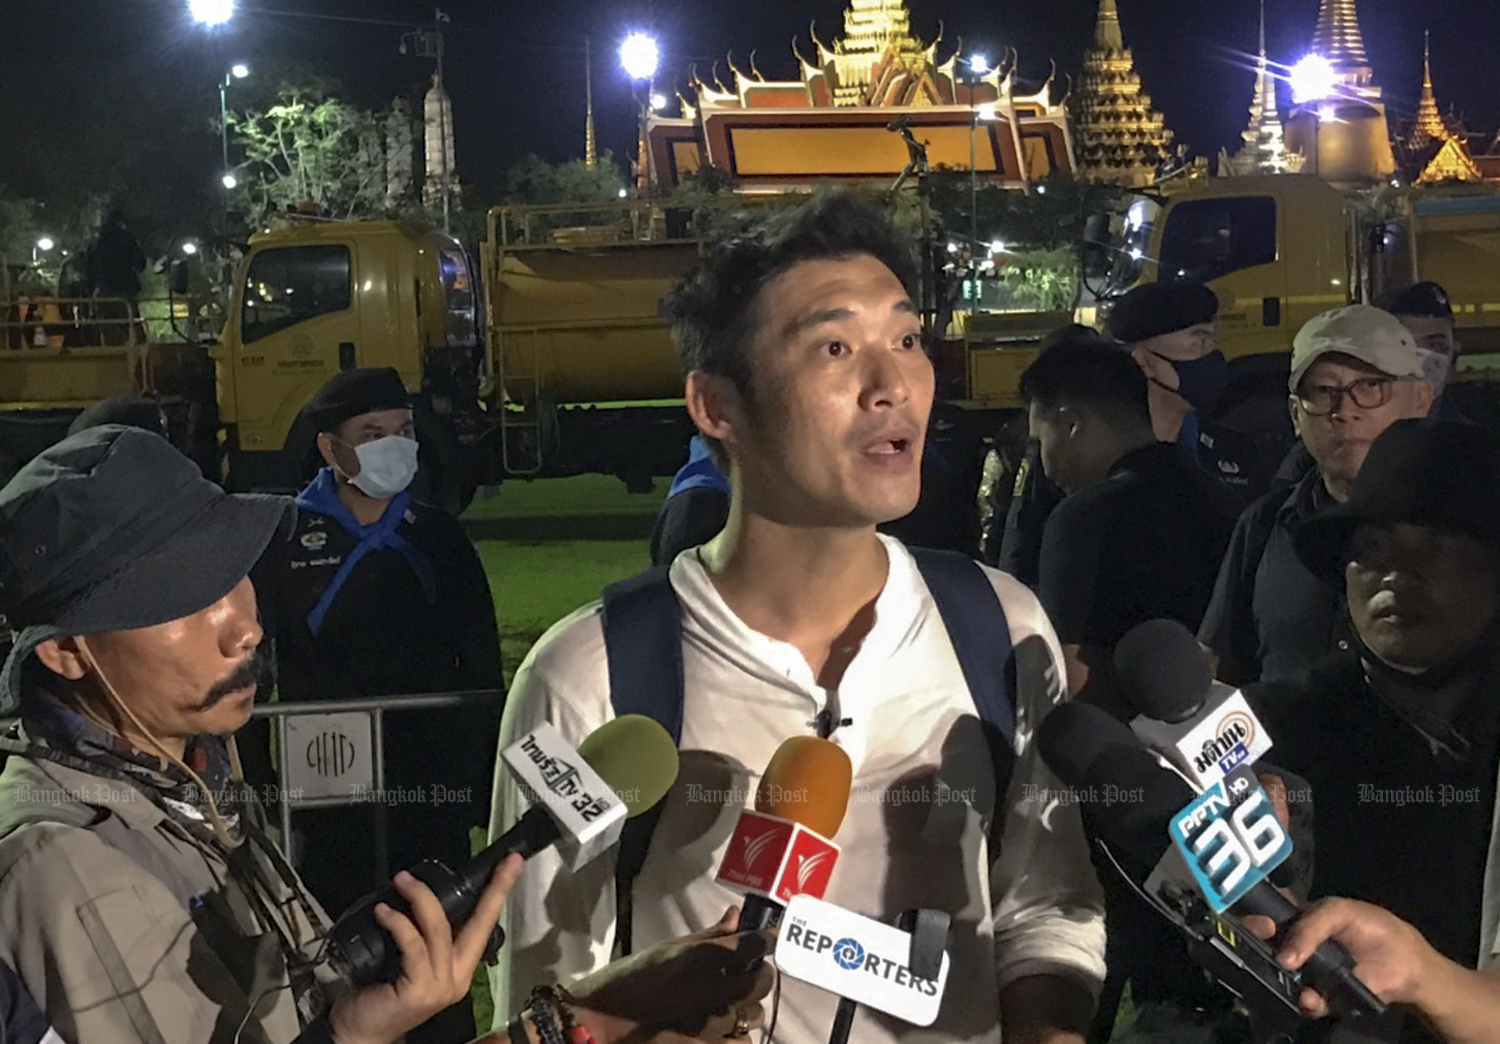 Progressive Movement co-founder Thanathorn Juangroongruangkit speaks to reporters during a brief appearance at the Sanam Luang pro-democracy protest on Sept 19. (Post File Photo).